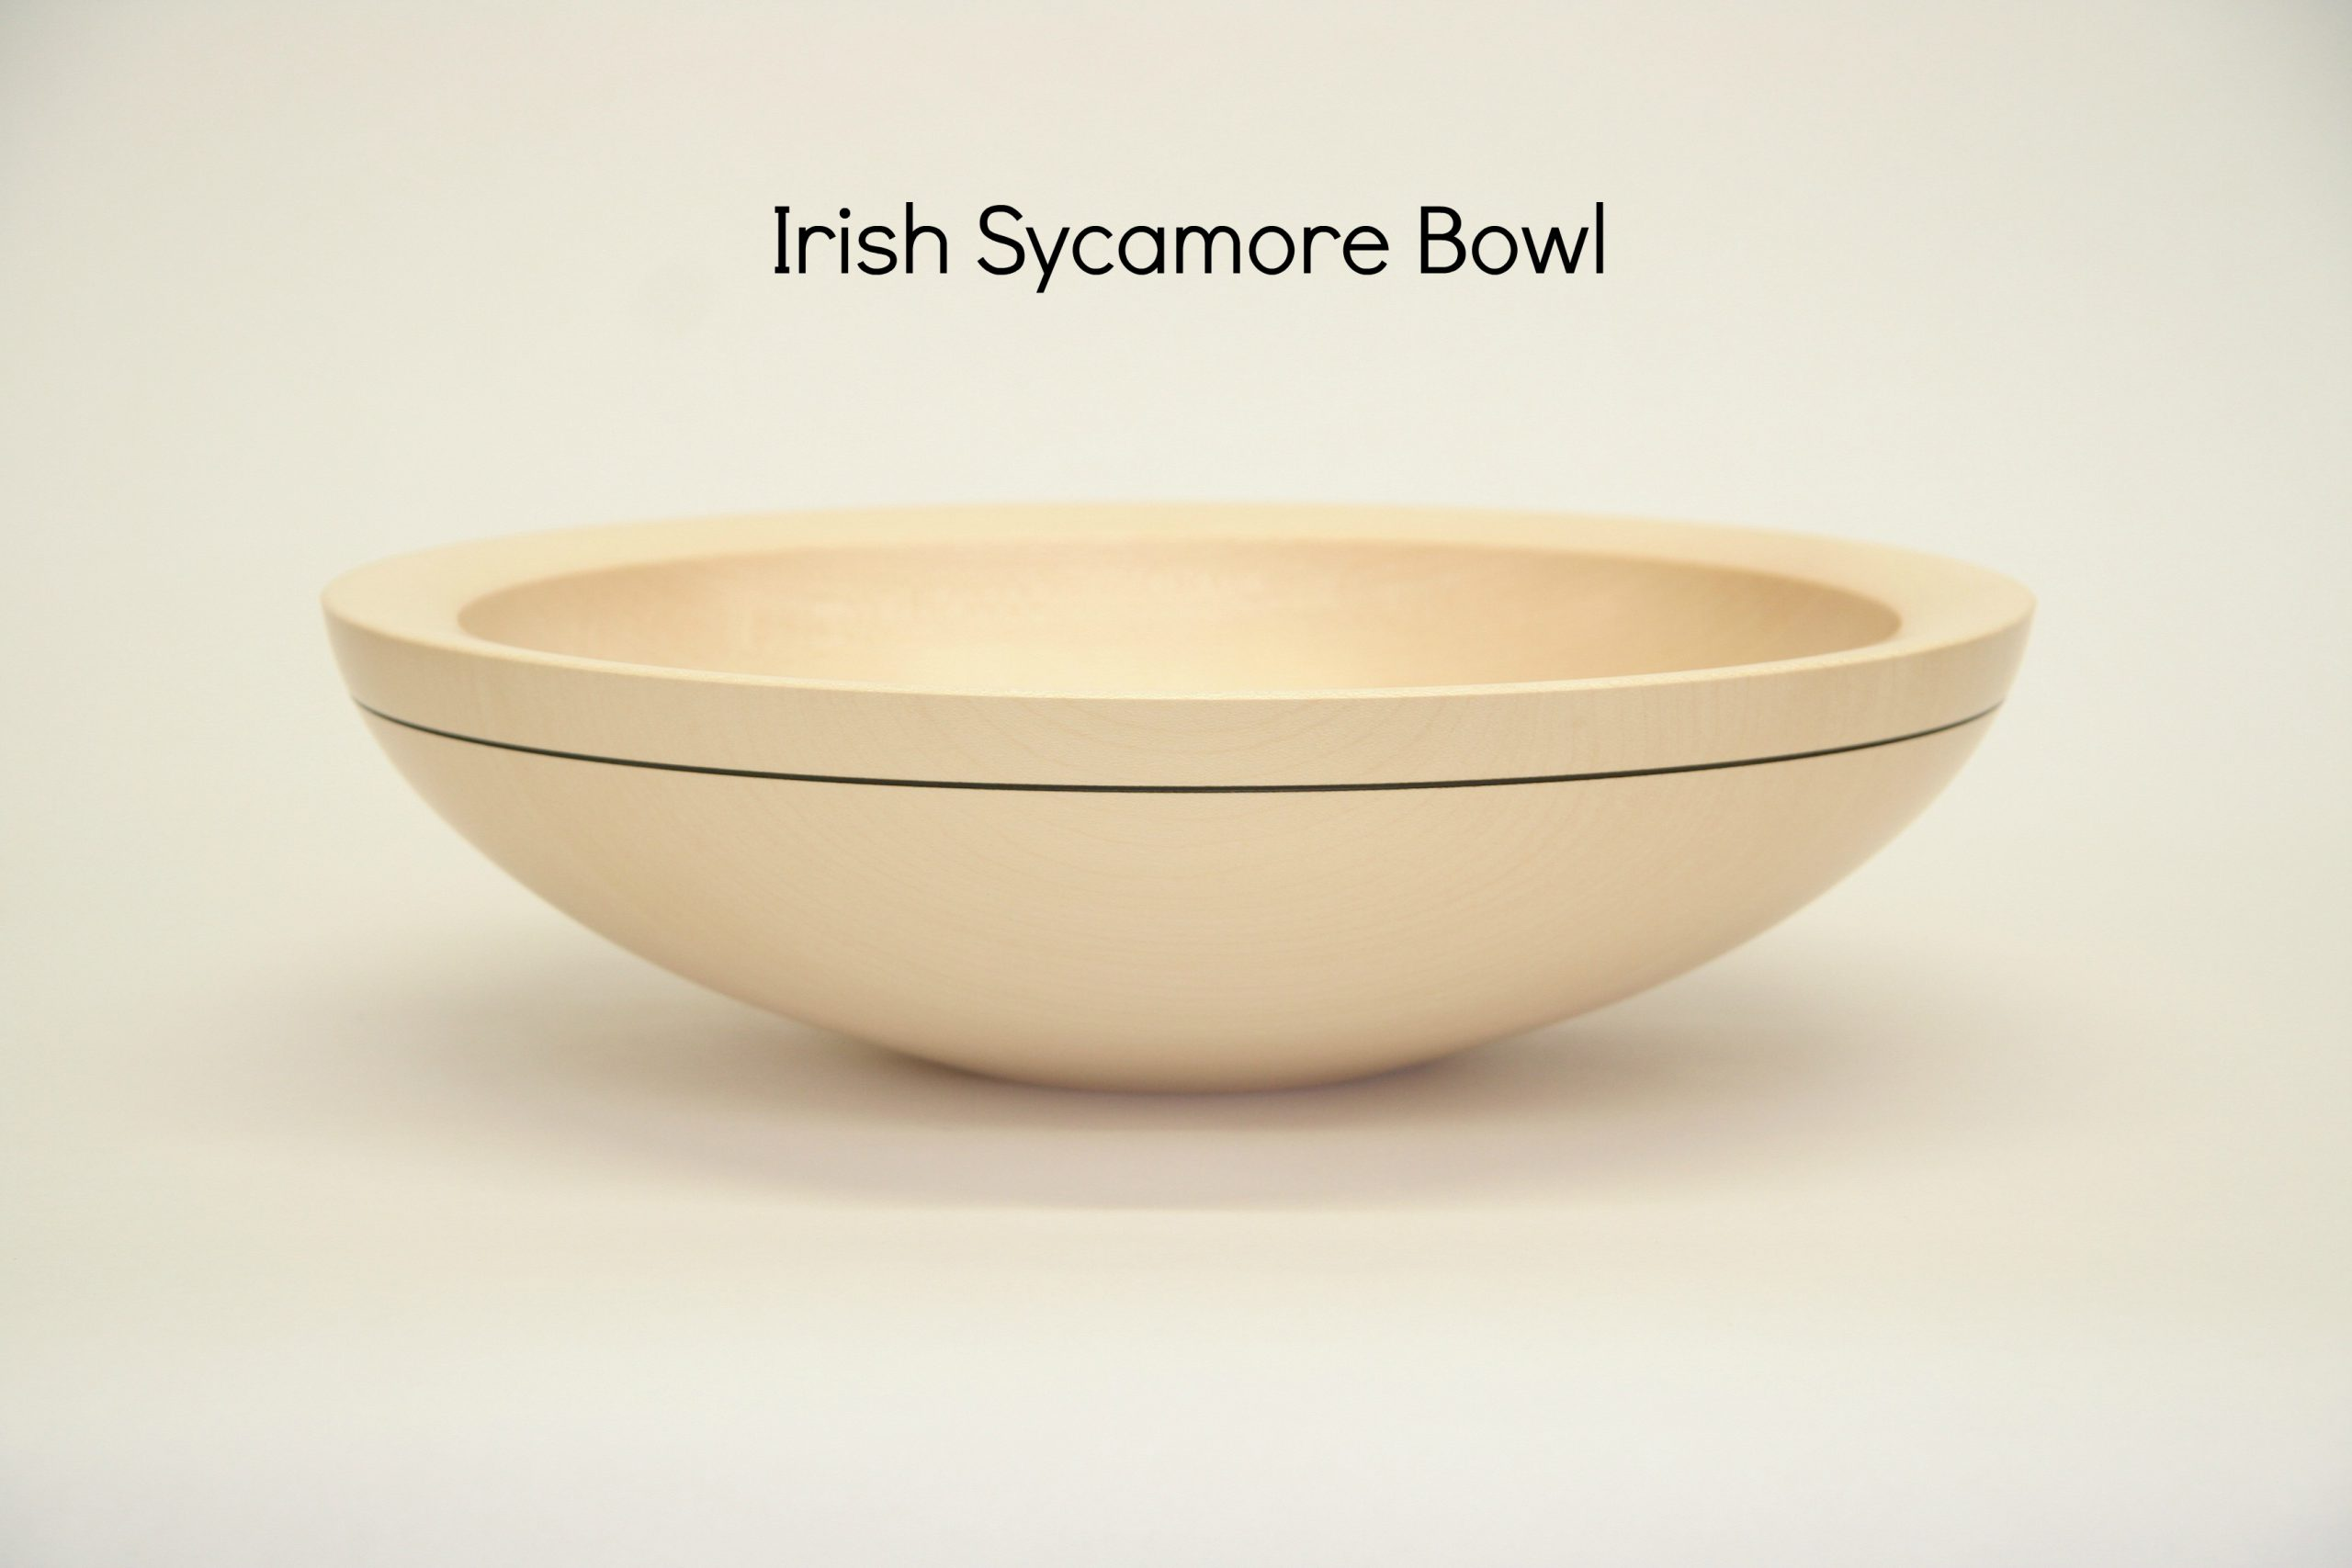 Sycamore bowl